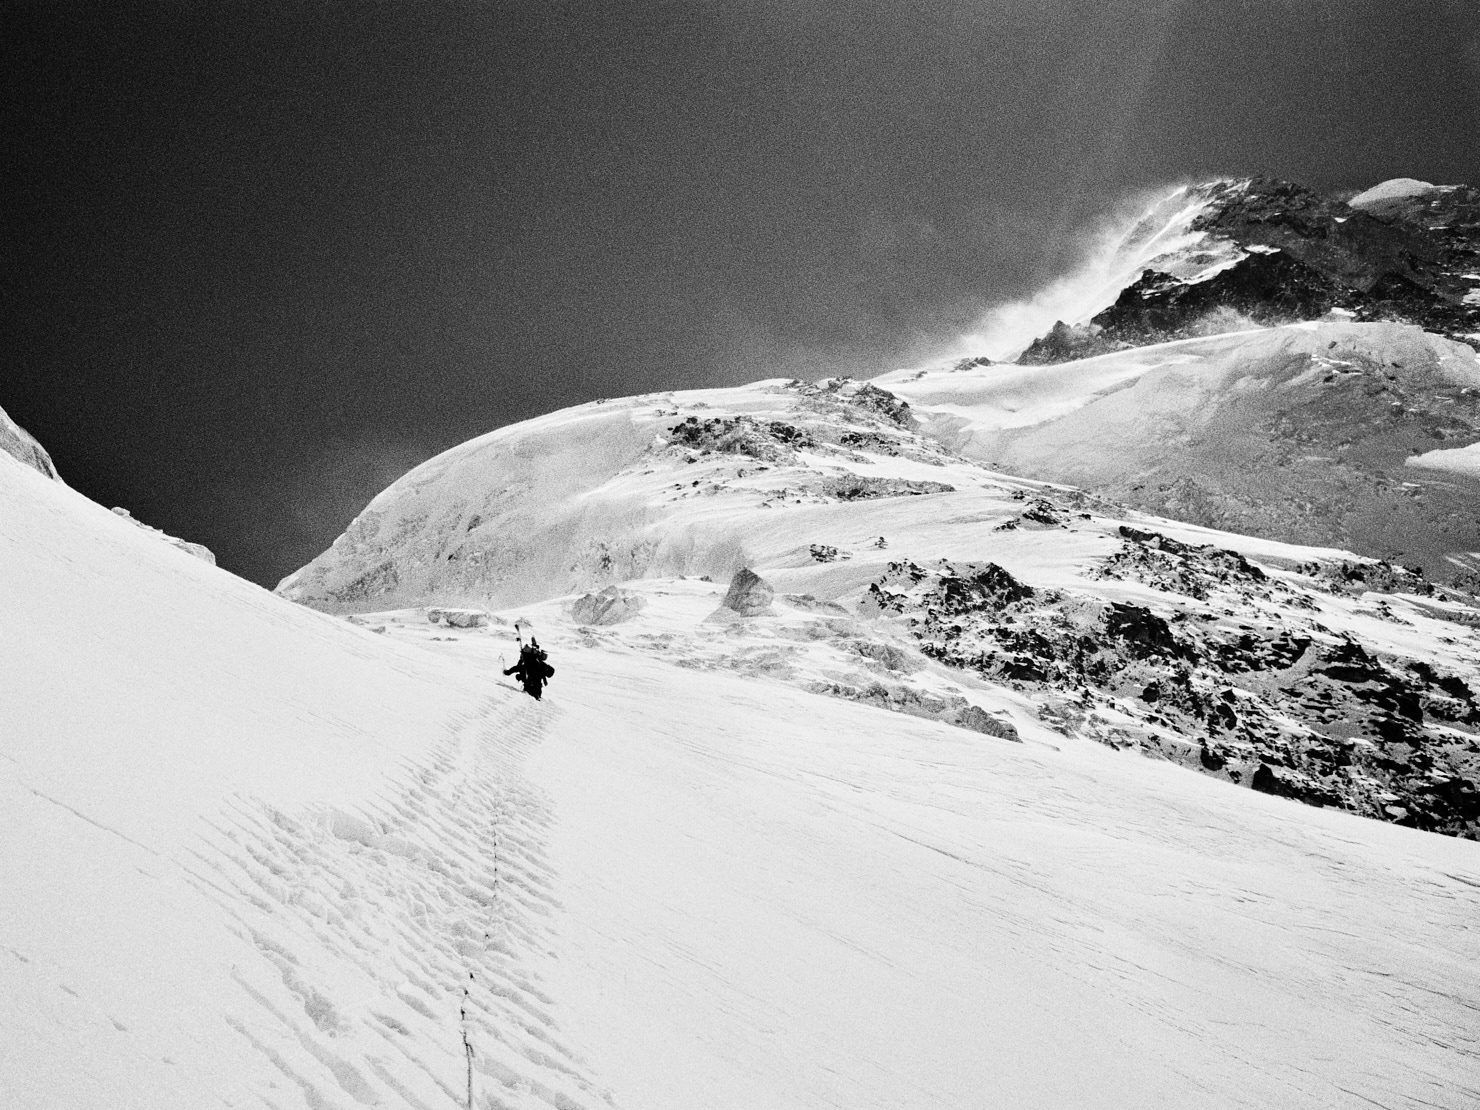 Anders Ödman on Pik Pobeda East (6762 m) in the Kyrgyz Tian Shan. Image taken prior to making the first ski descent. Contax T3, B+W yellow filter and Agfa APX 100 (in HC-110). Flextight X1 Scan.